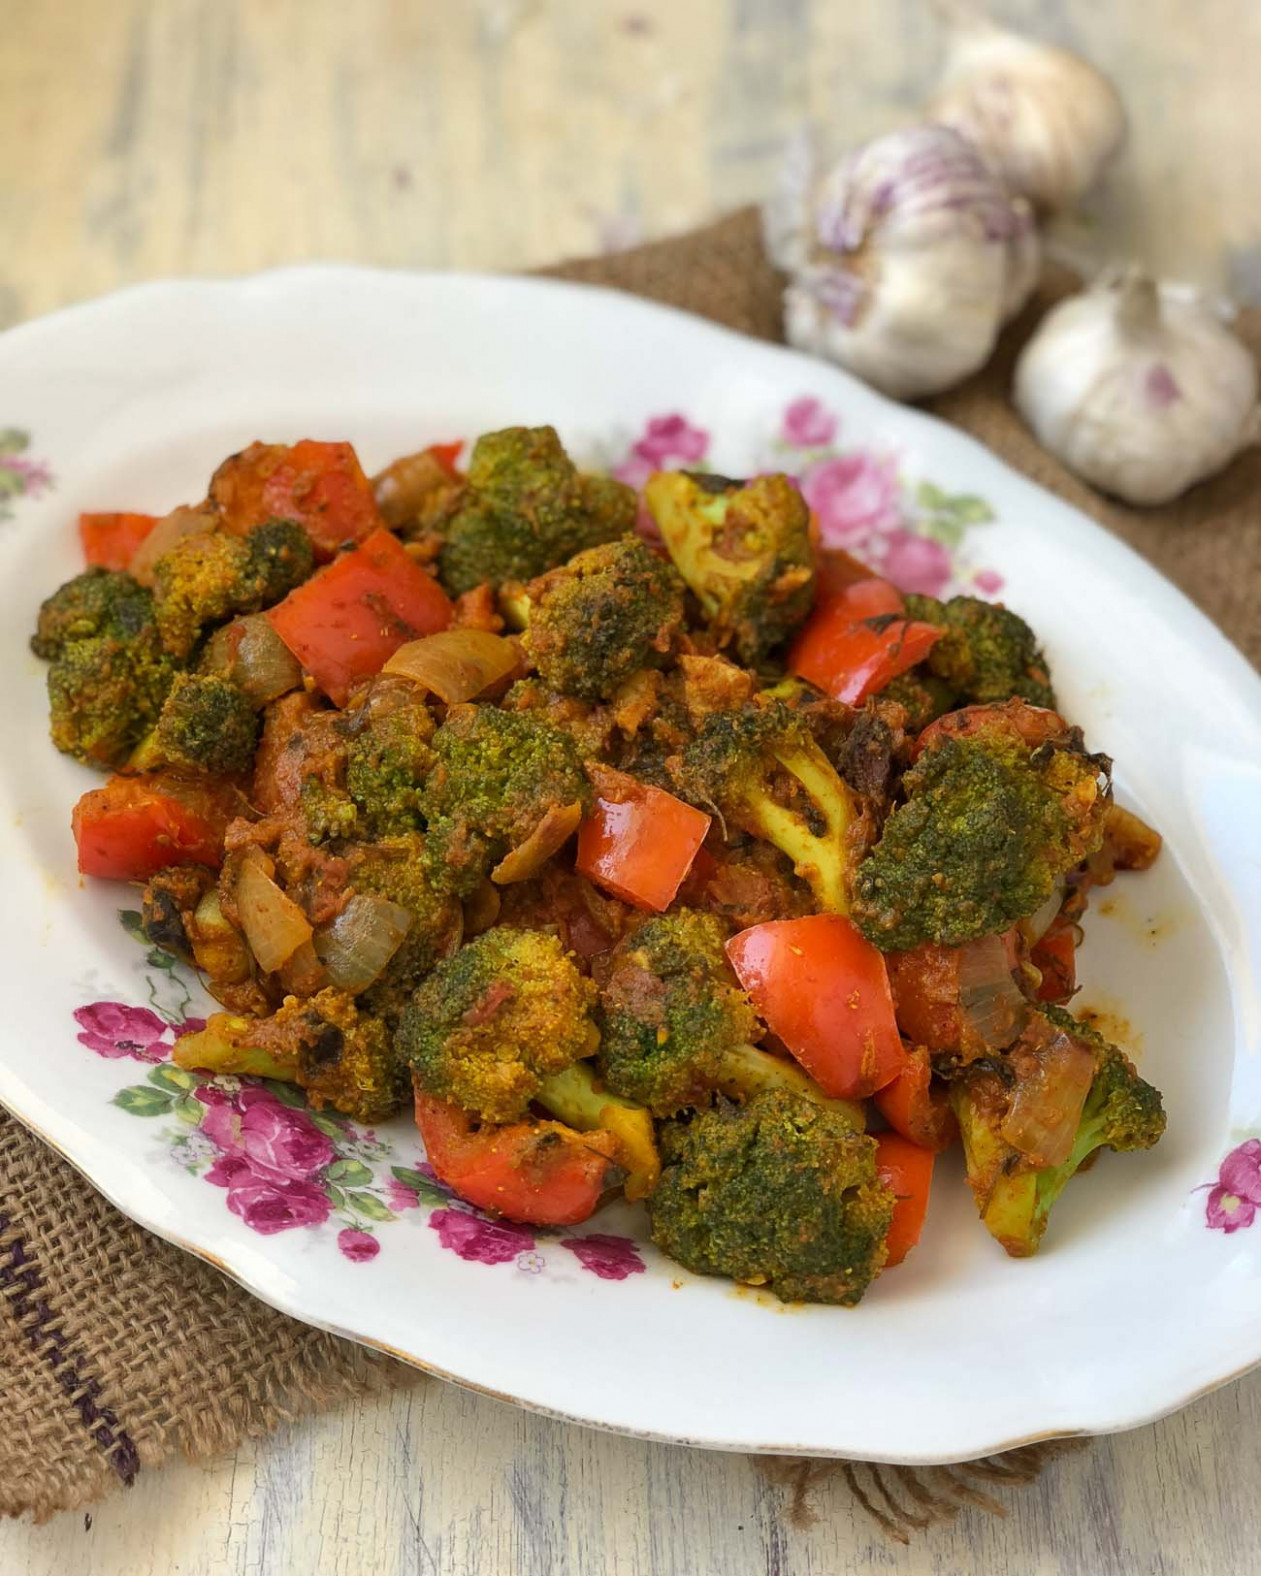 Kadai Broccoli Masala Recipe - Broccoli Cooked With Indian Spices - Quick Lunch Recipes Indian Vegetarian